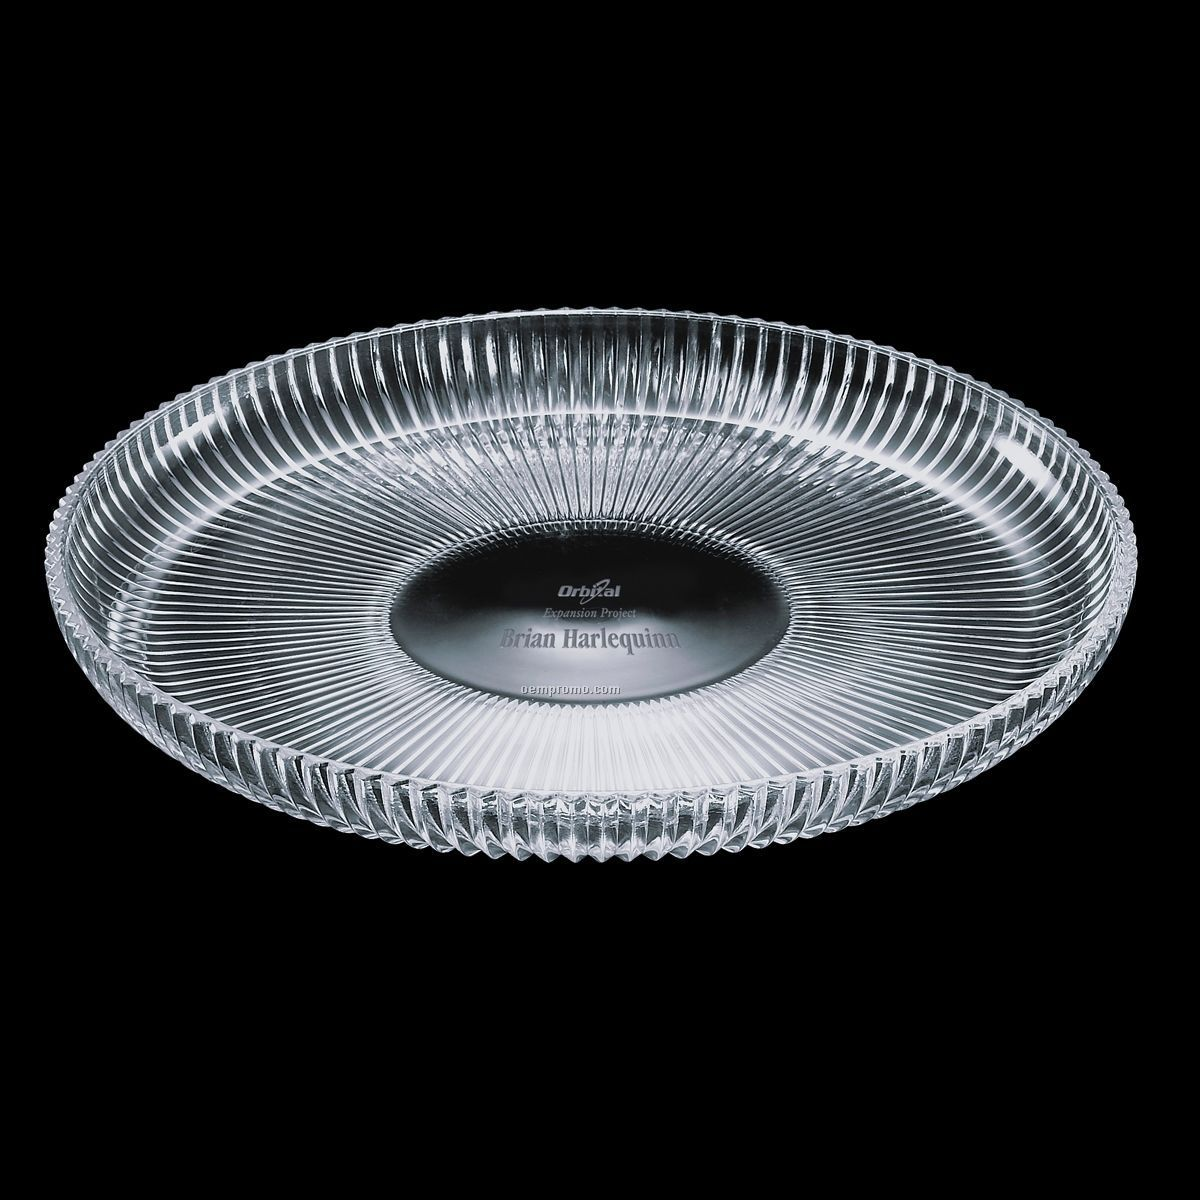 "Devon Crystal Lipped Platter (12-1/2"")"